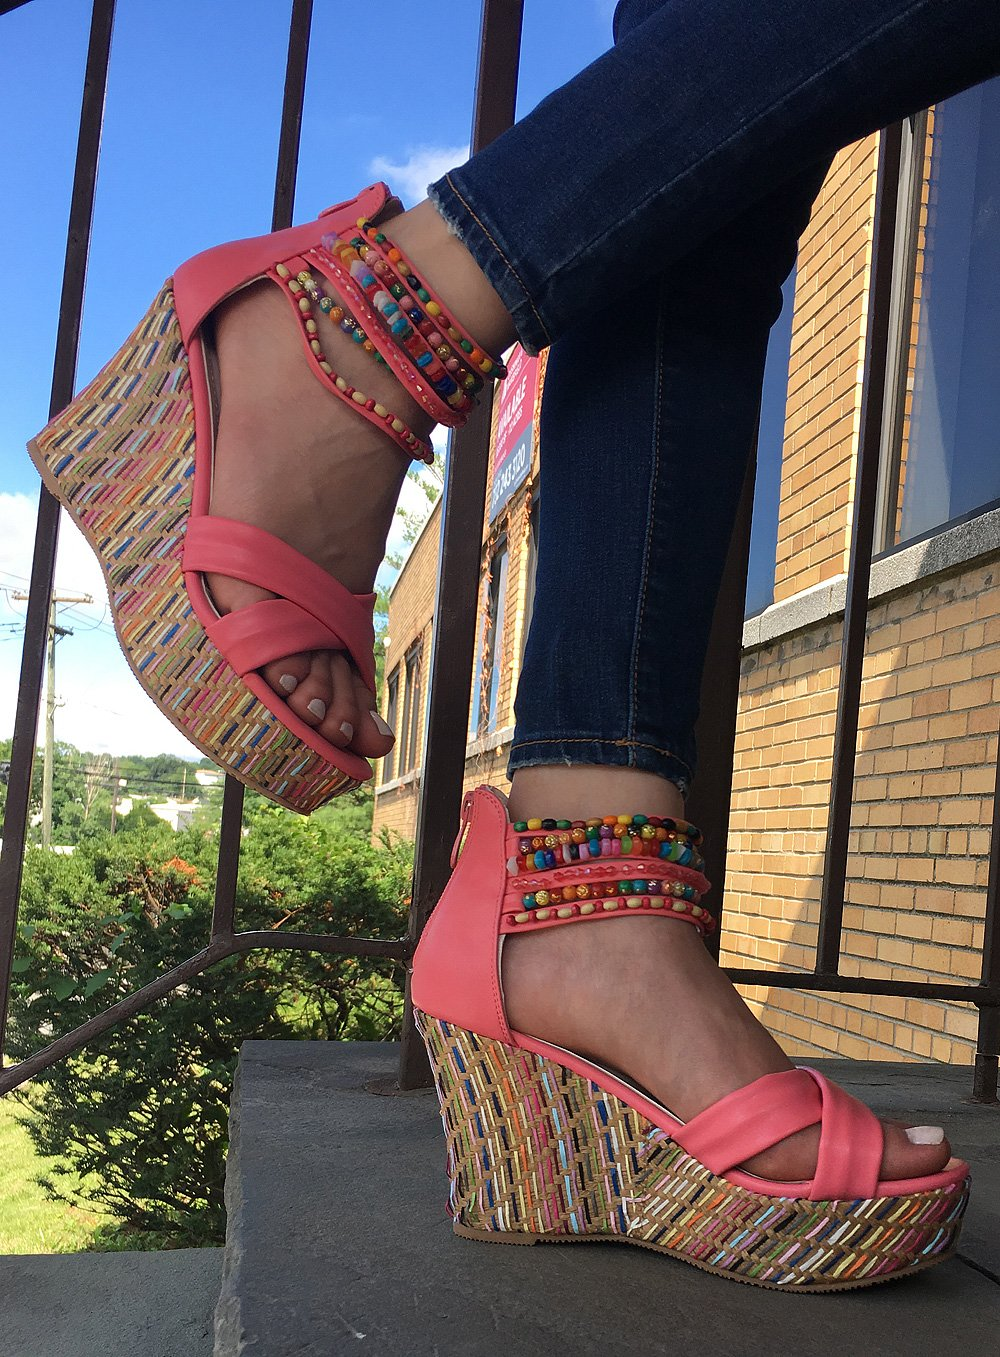 DREAM PAIRS Bling Women's Wedge Sandals Pearls Across The Top Platform High Heels Coral Size 8.5 by DREAM PAIRS (Image #6)